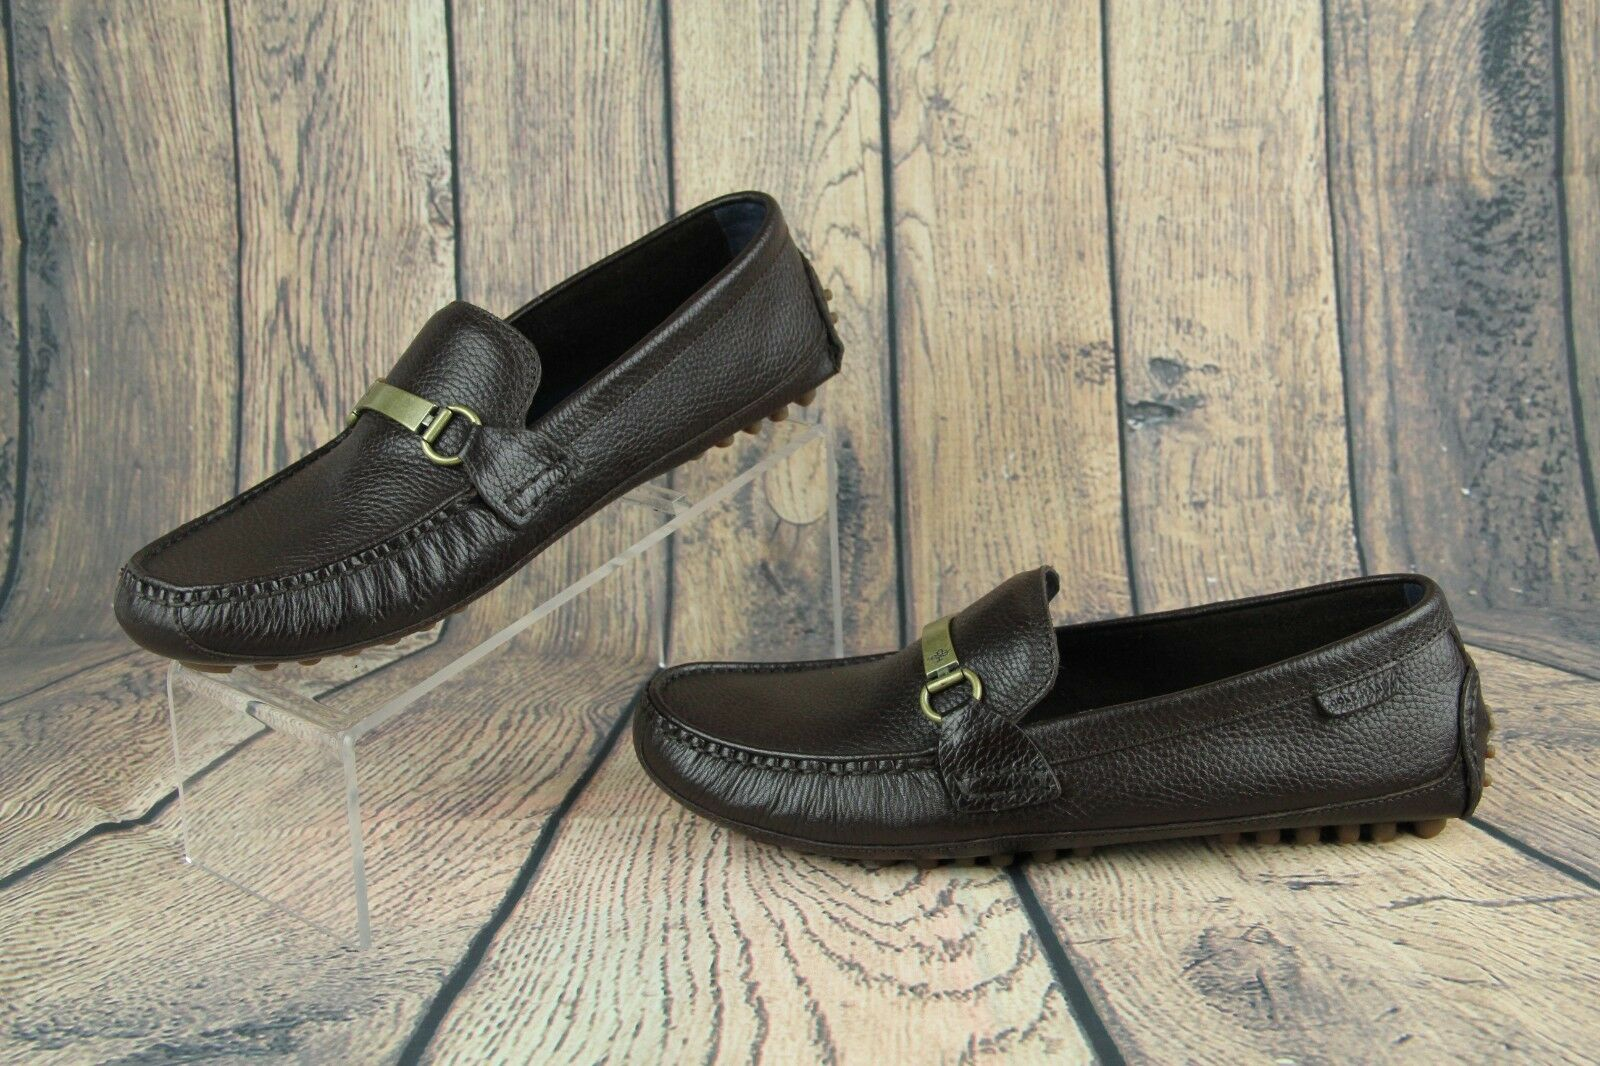 Cole Haan schuhe Provincetown C26141 BTDRVII Loafers braun Pebbled C26141 Provincetown Mens SZ 9.5 dc6a58